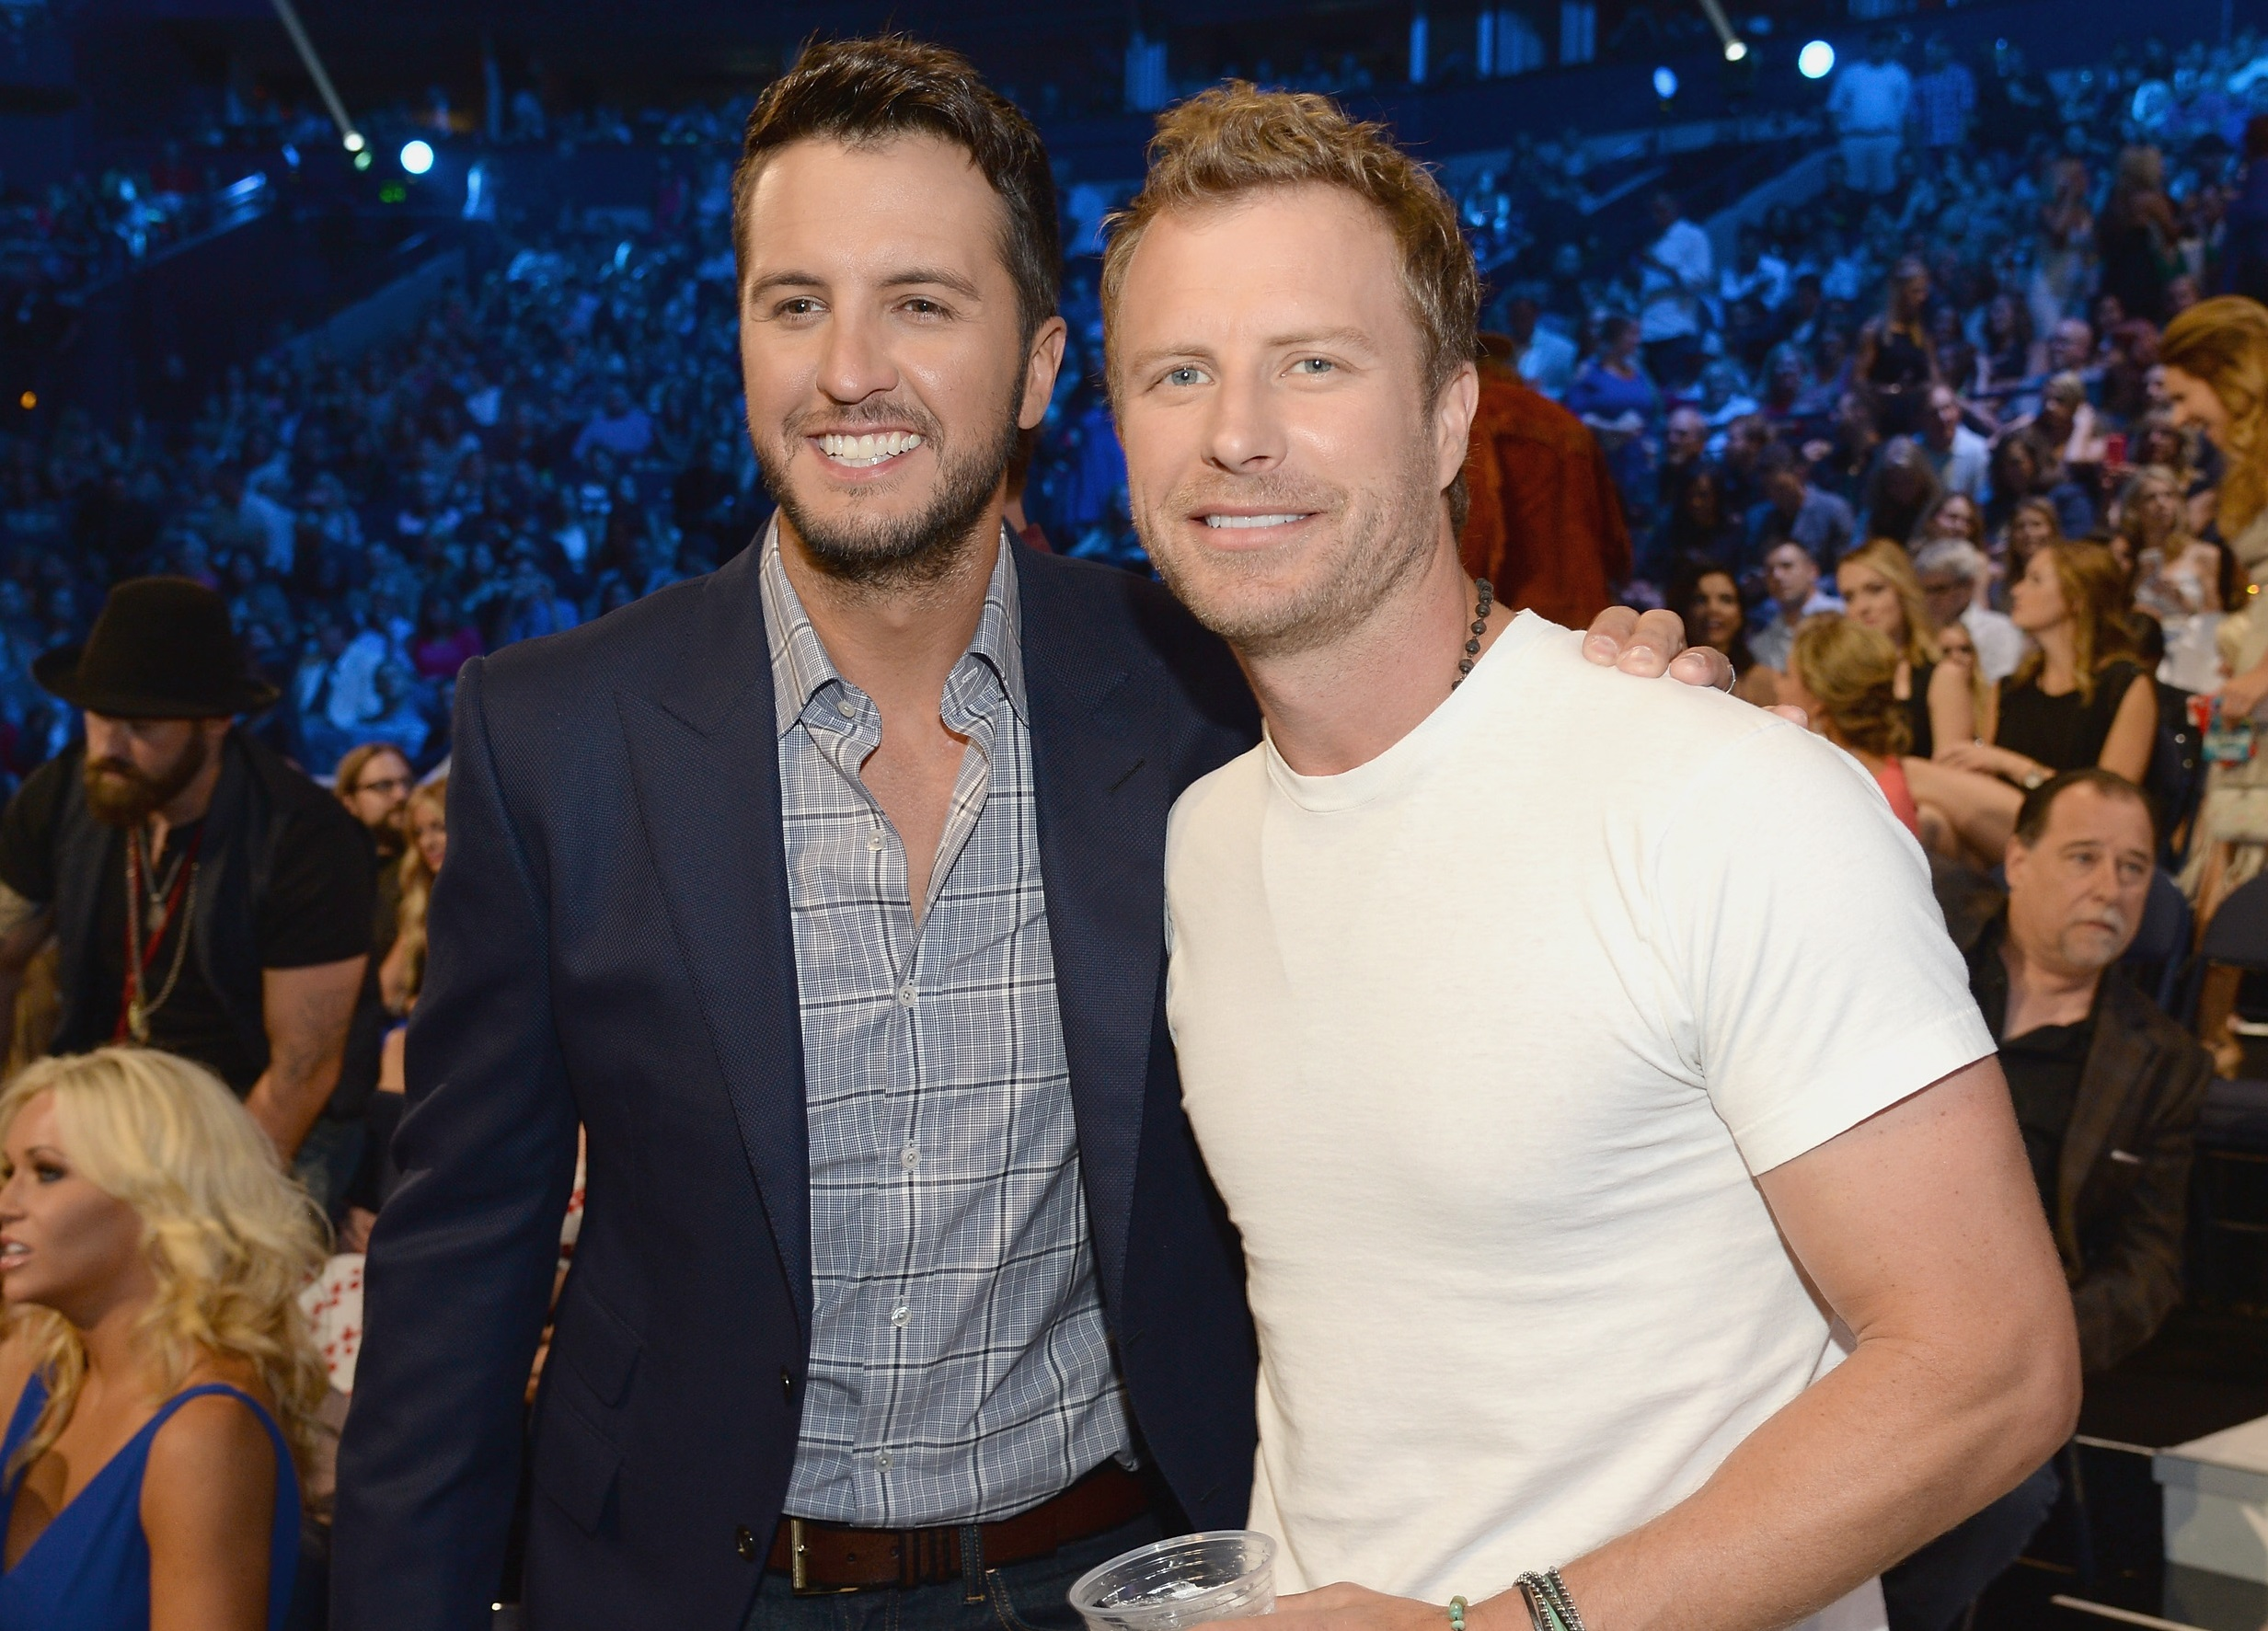 Dierks Bentley, Luke Bryan to Play Faster Horses Festival